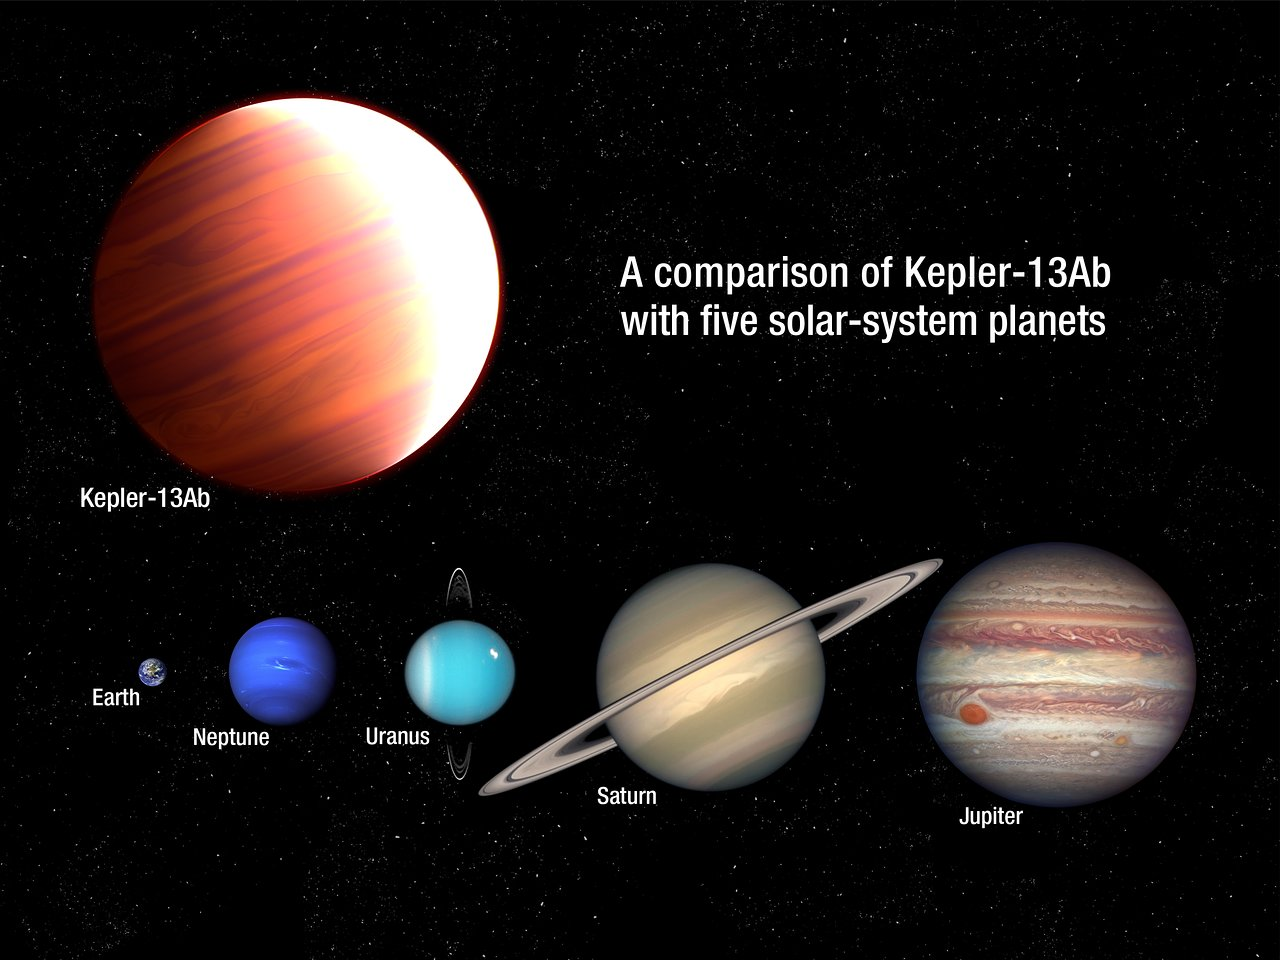 Comparison of Kepler-13Ab with five planets from our Solar System